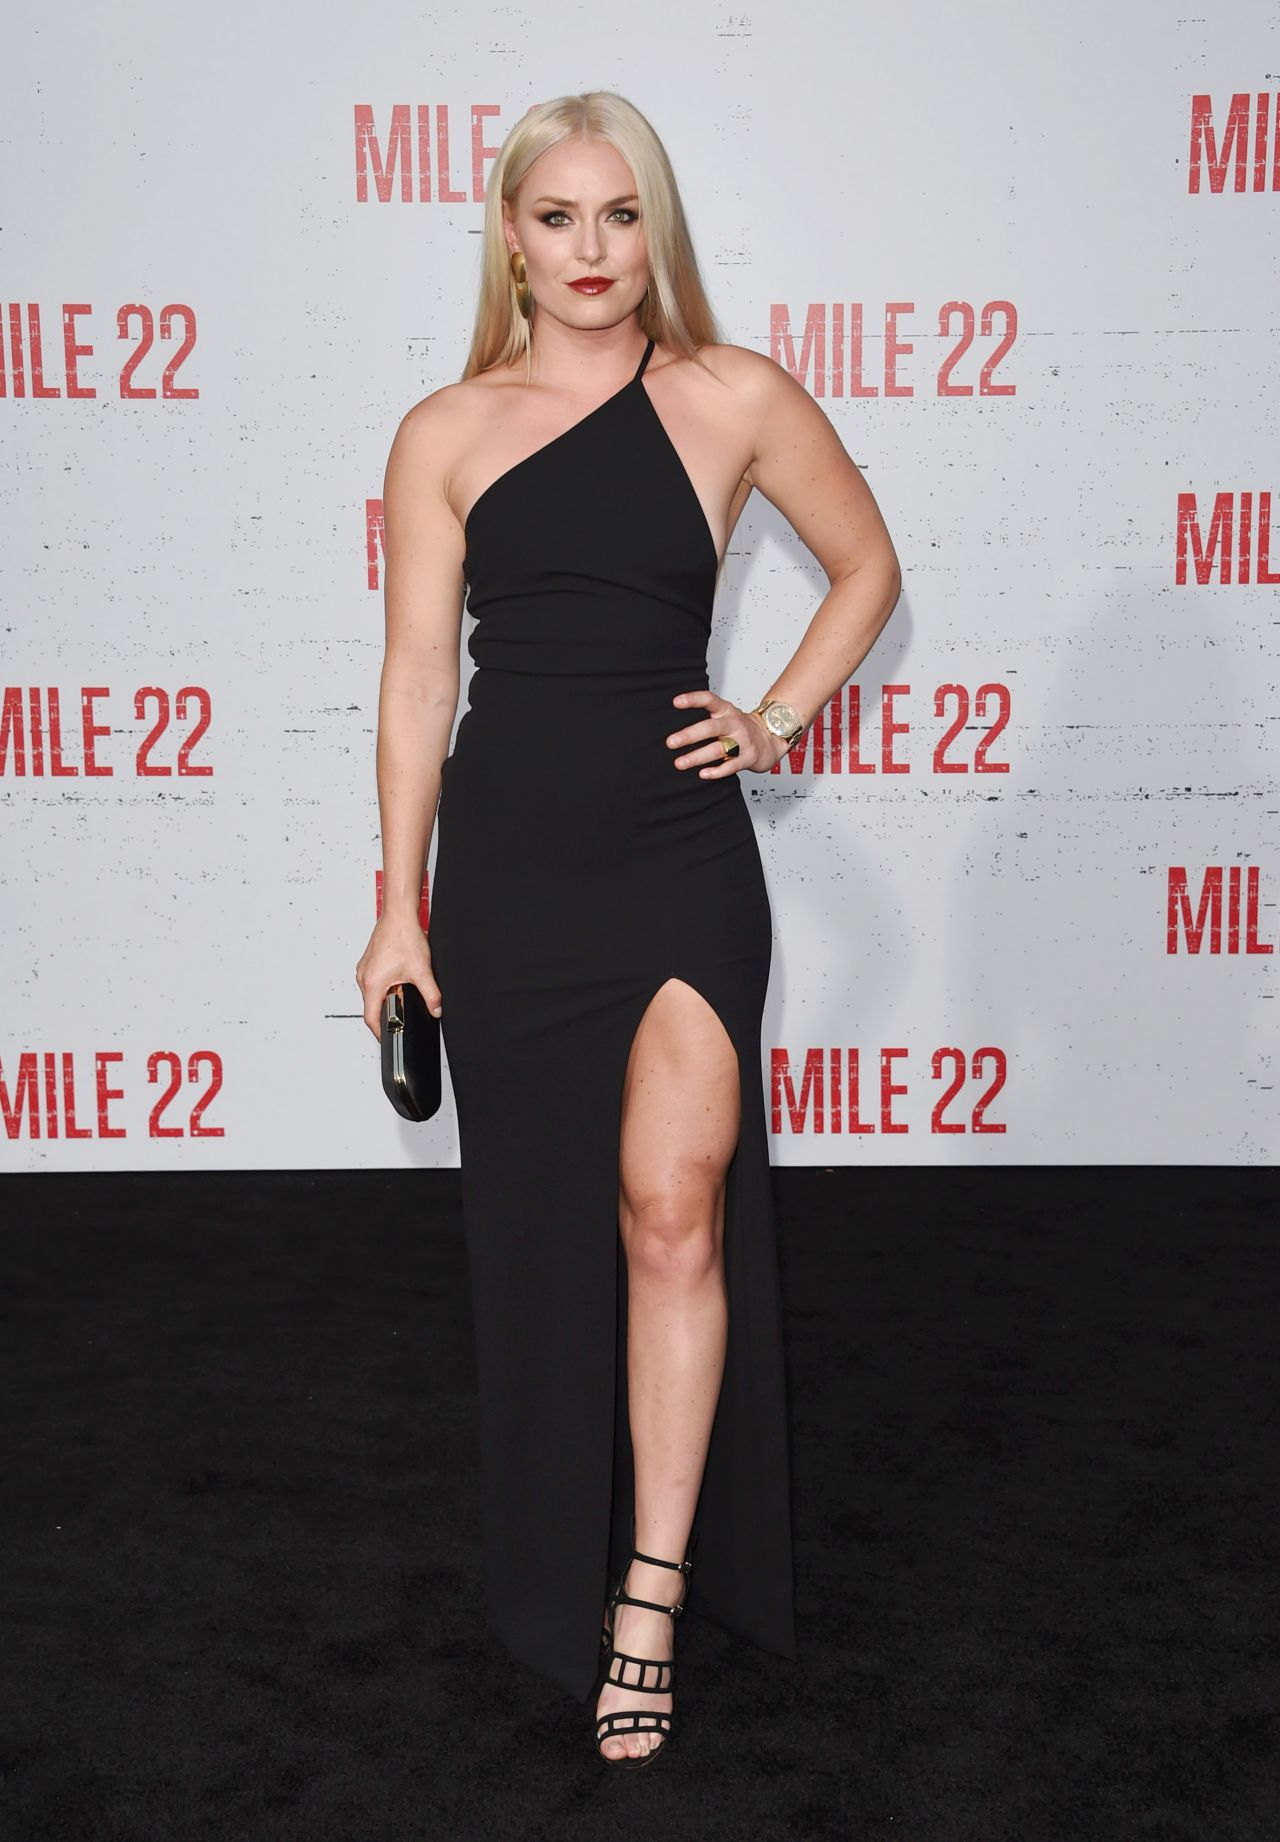 Lindsey Vonn glam and gorgeous at Mile 22 movie premiere